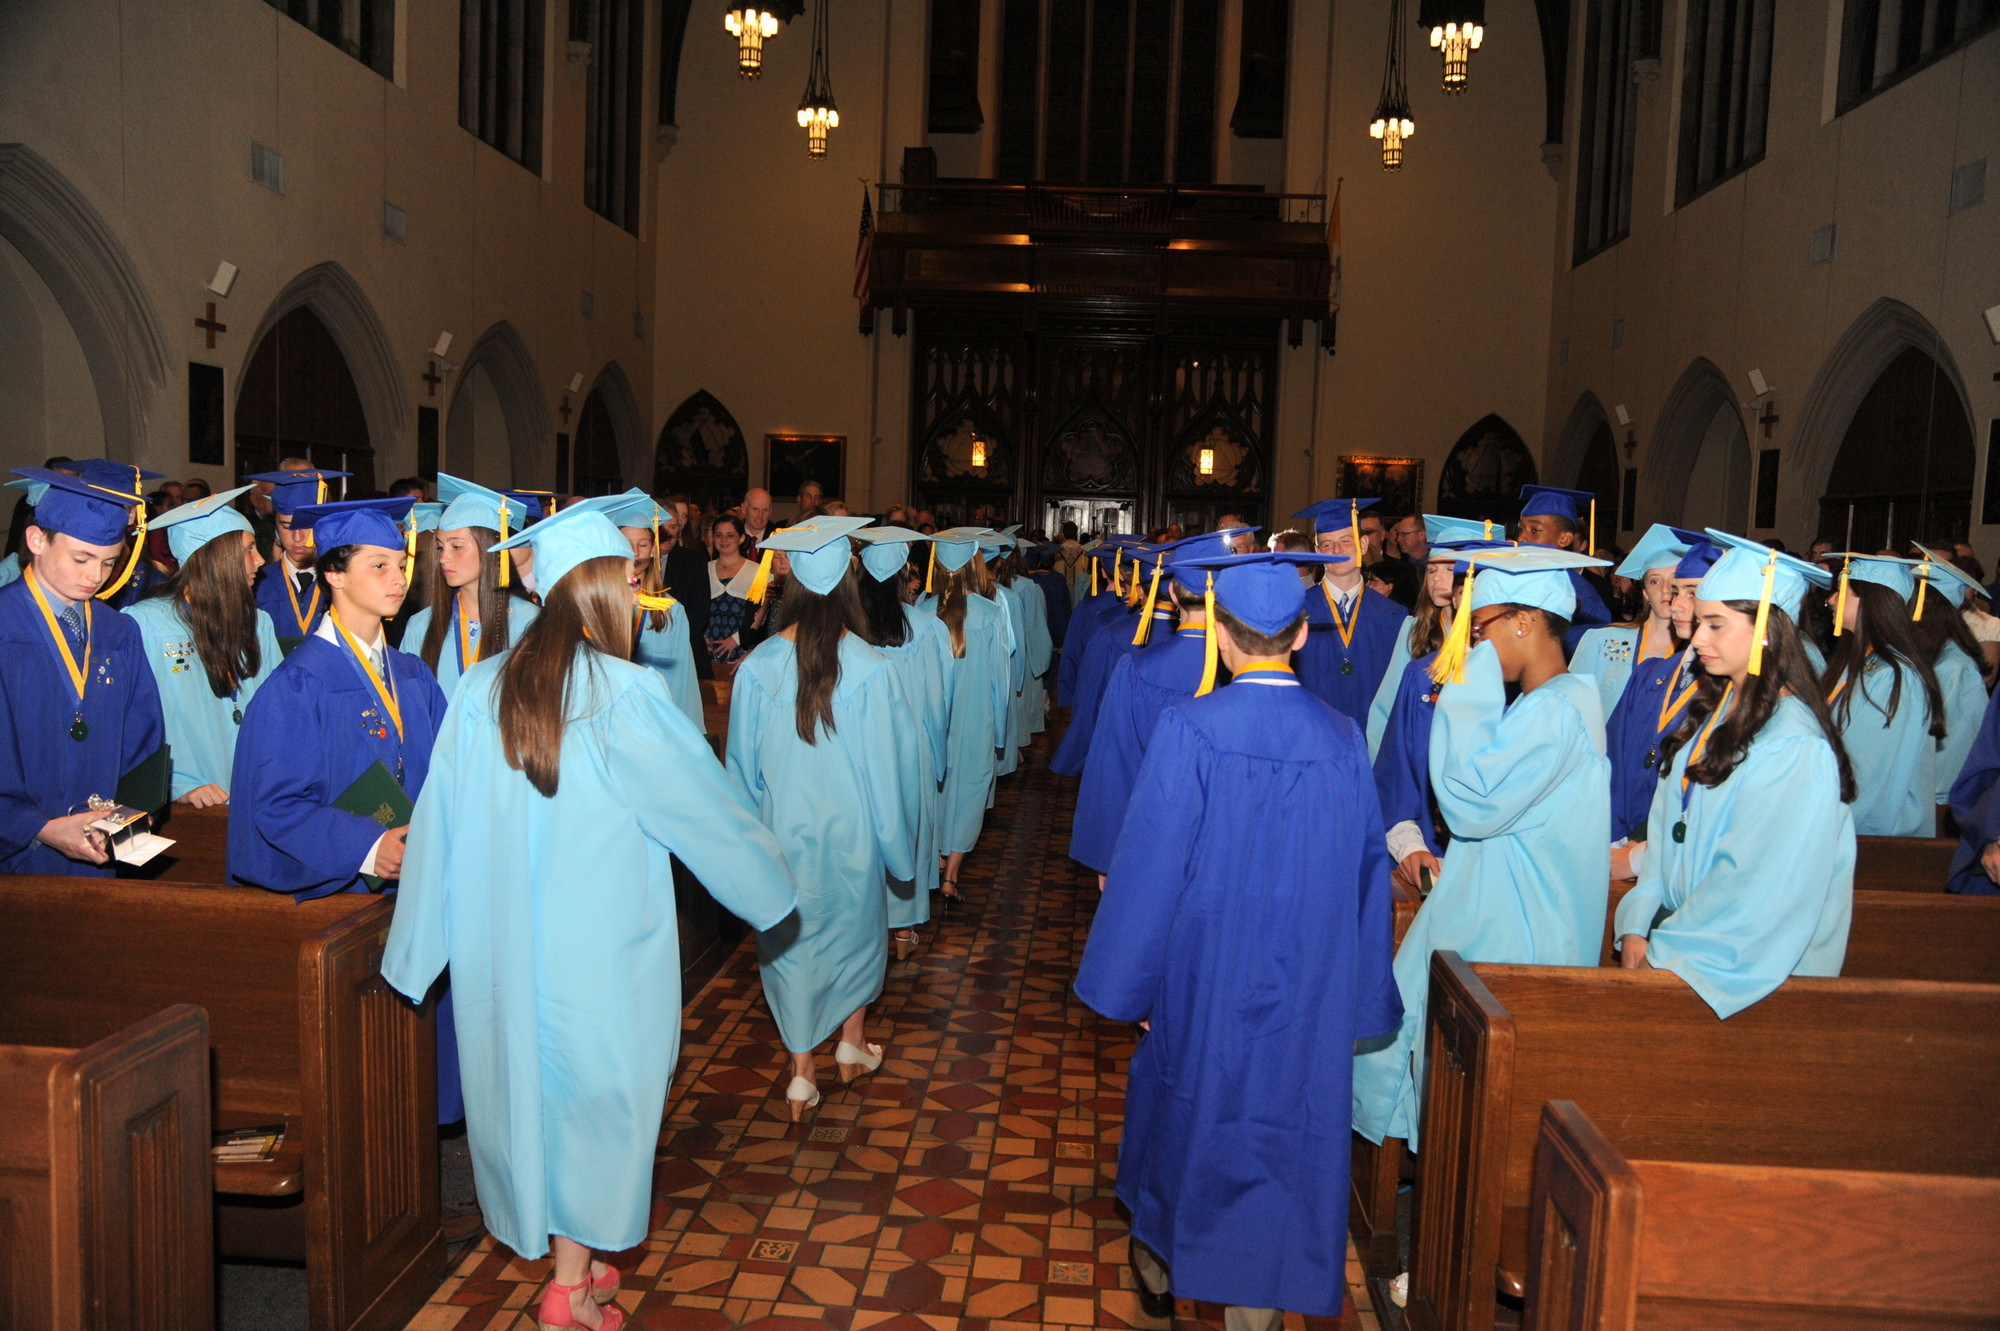 The 90 students of the class of 2013 graduated from St. Agnes Cathedral School on June 7.